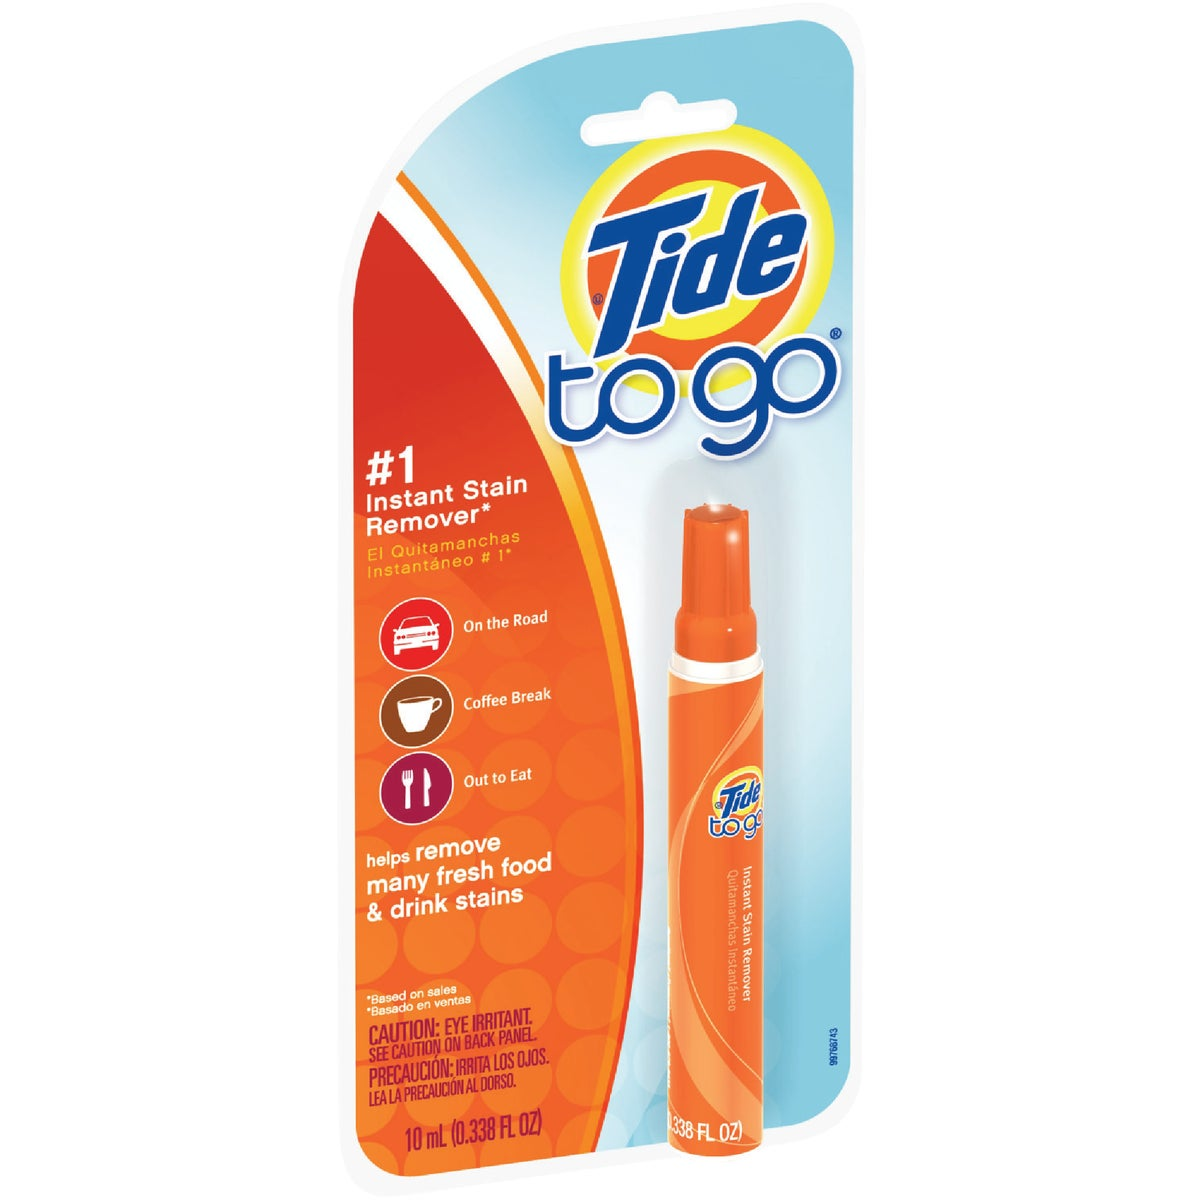 TIDE2GO STAIN REMOVR PEN - 01870 by Procter & Gamble